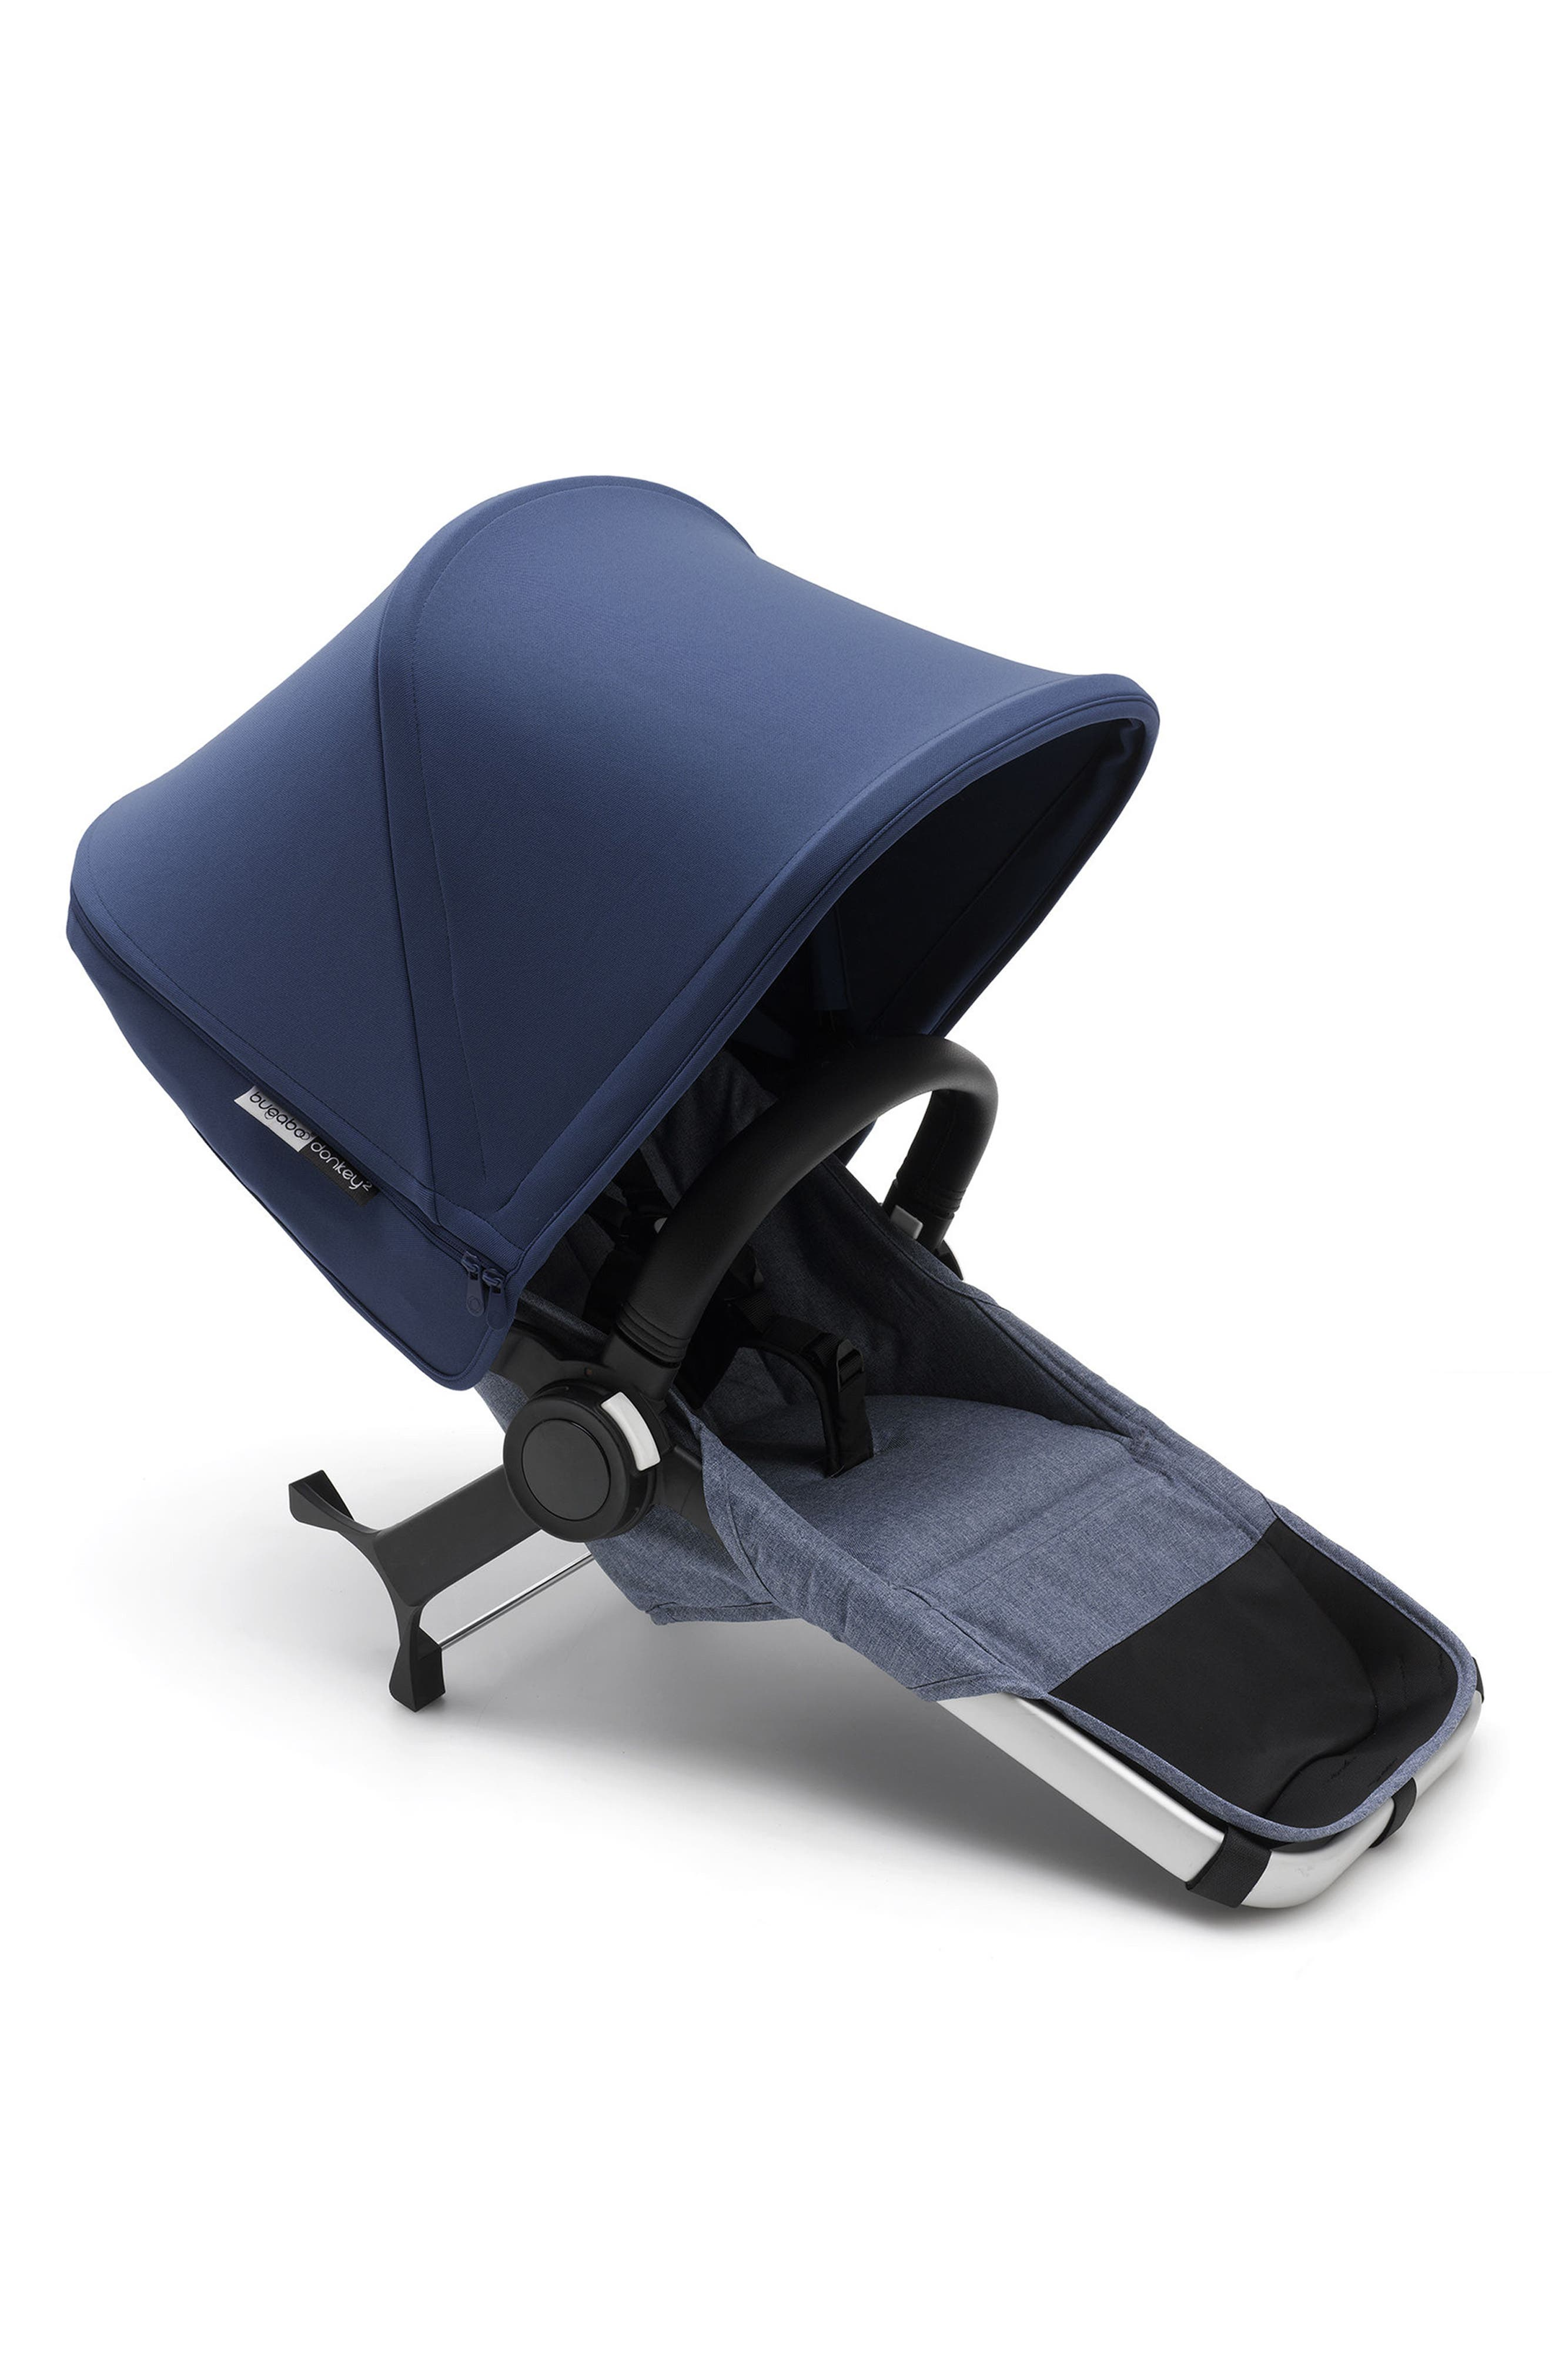 Main Image - Bugaboo Donkey2 Complete Duo Extension Set